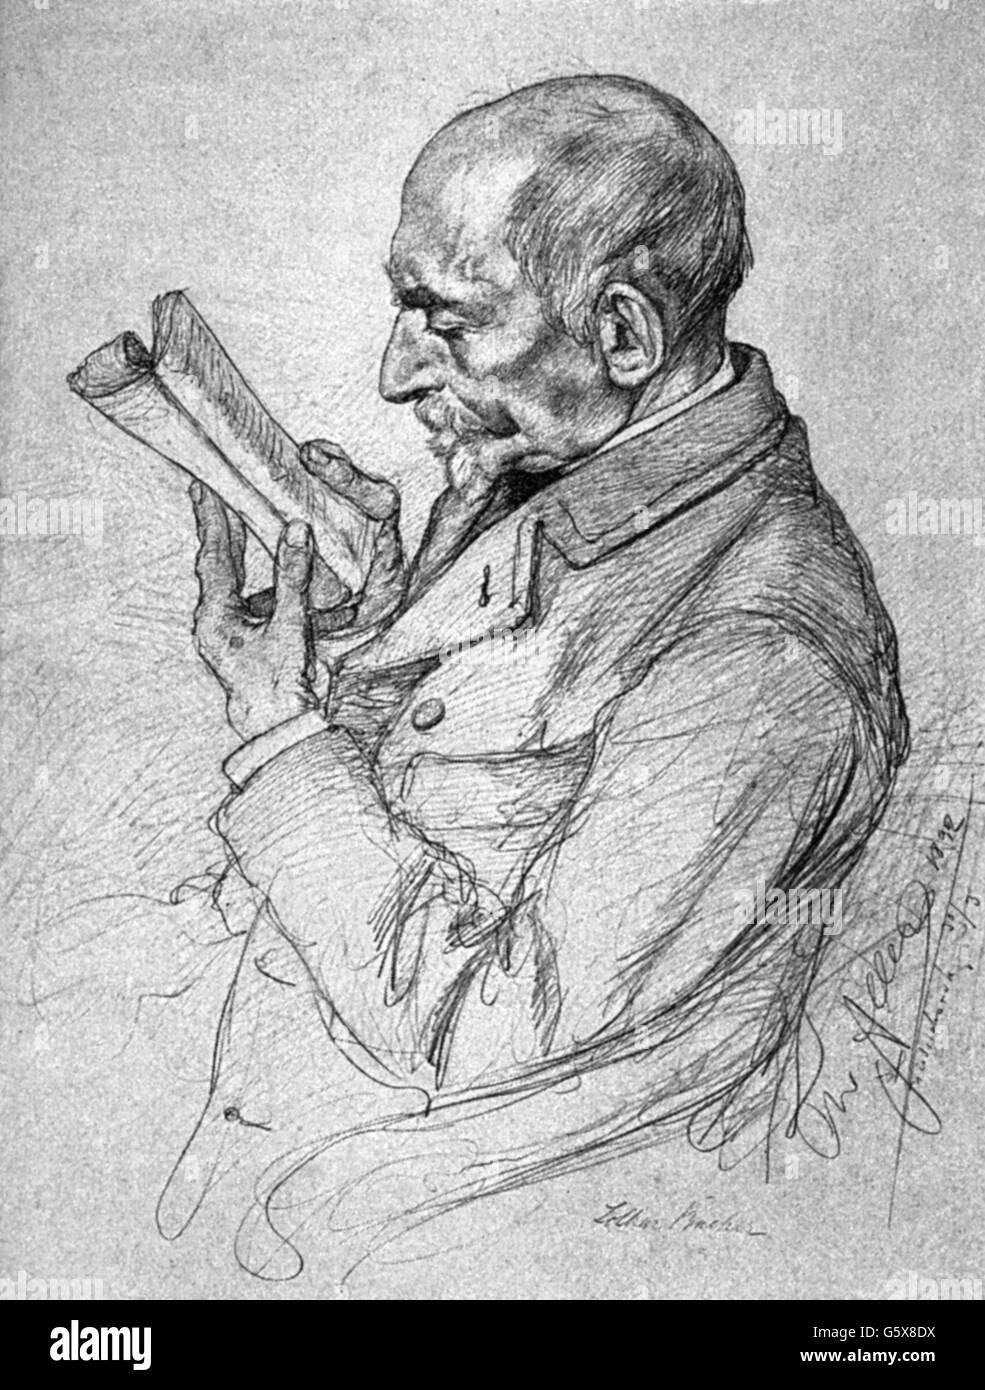 Bucher, Lothar, 25.10.1817 - 12.10.1892, German civil servant, politician and journalist, half length, drawing by Stock Photo